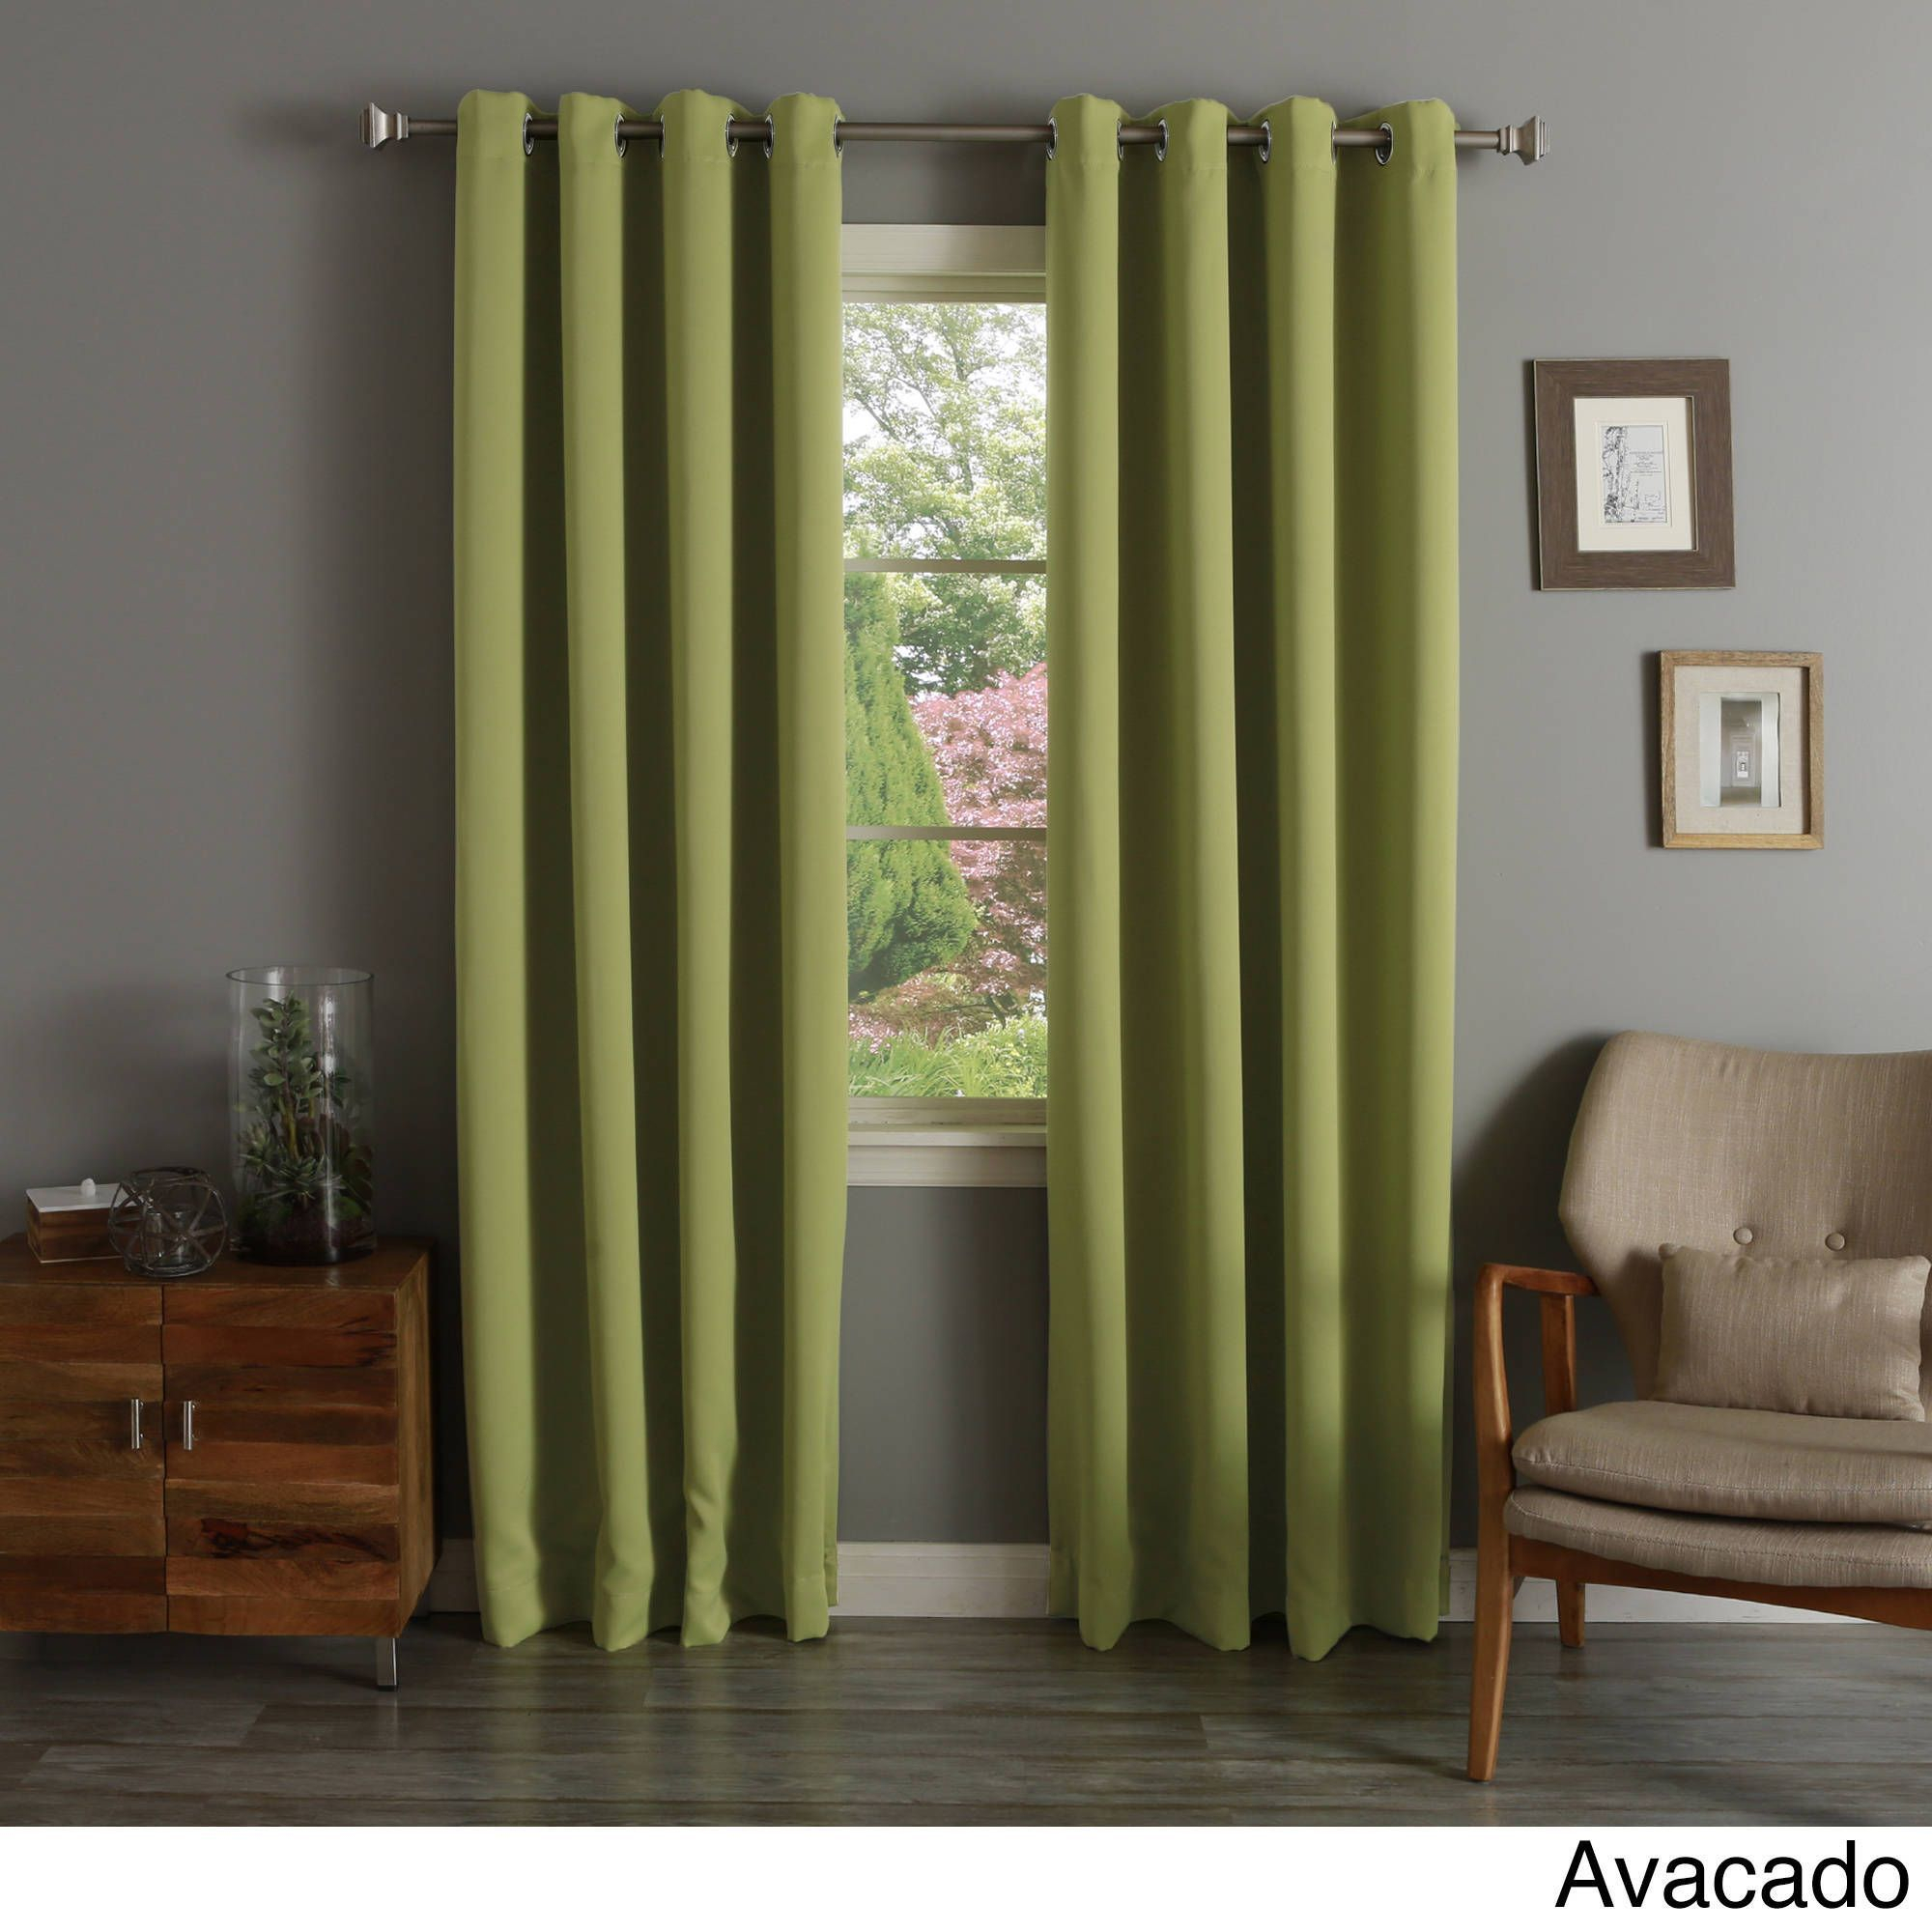 Aurora Home Silvertone Grommet Top Thermal Insulated With Silvertone Grommet Thermal Insulated Blackout Curtain Panel Pairs (View 4 of 30)